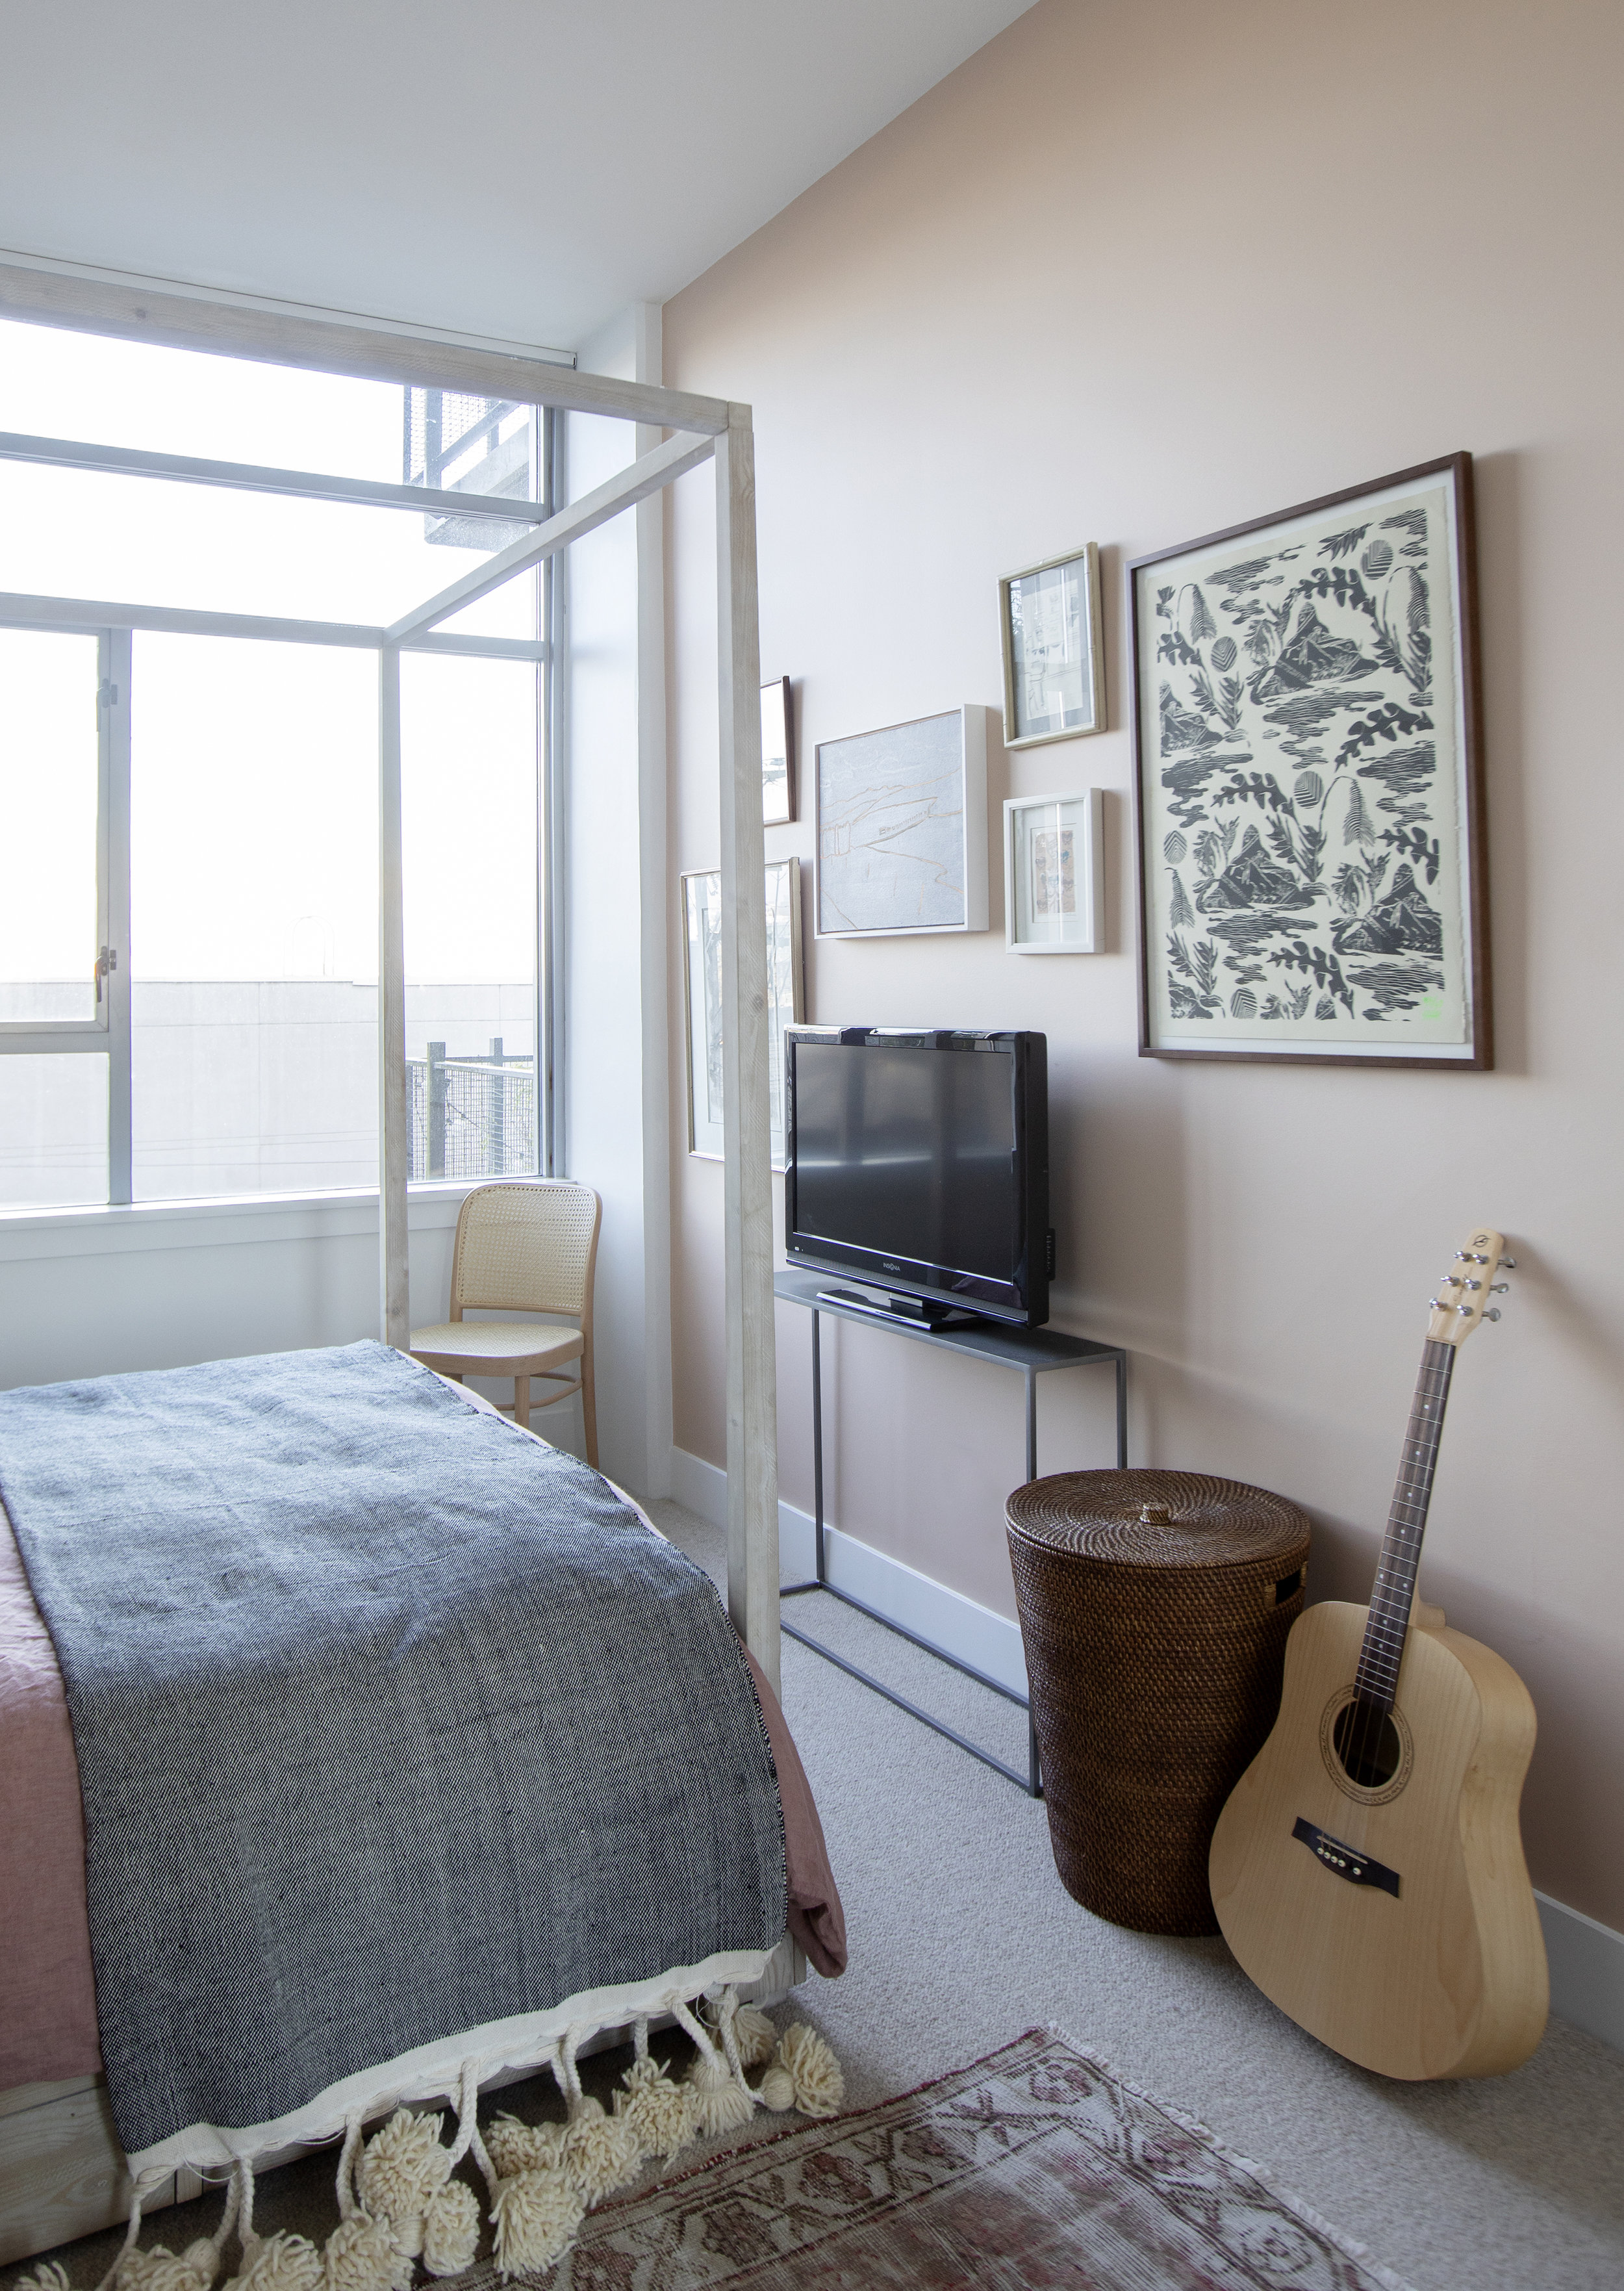 The view of the end of the bedroom, including a peach accent wall, and various paintings surrounding the tv located at the foot of the bed.